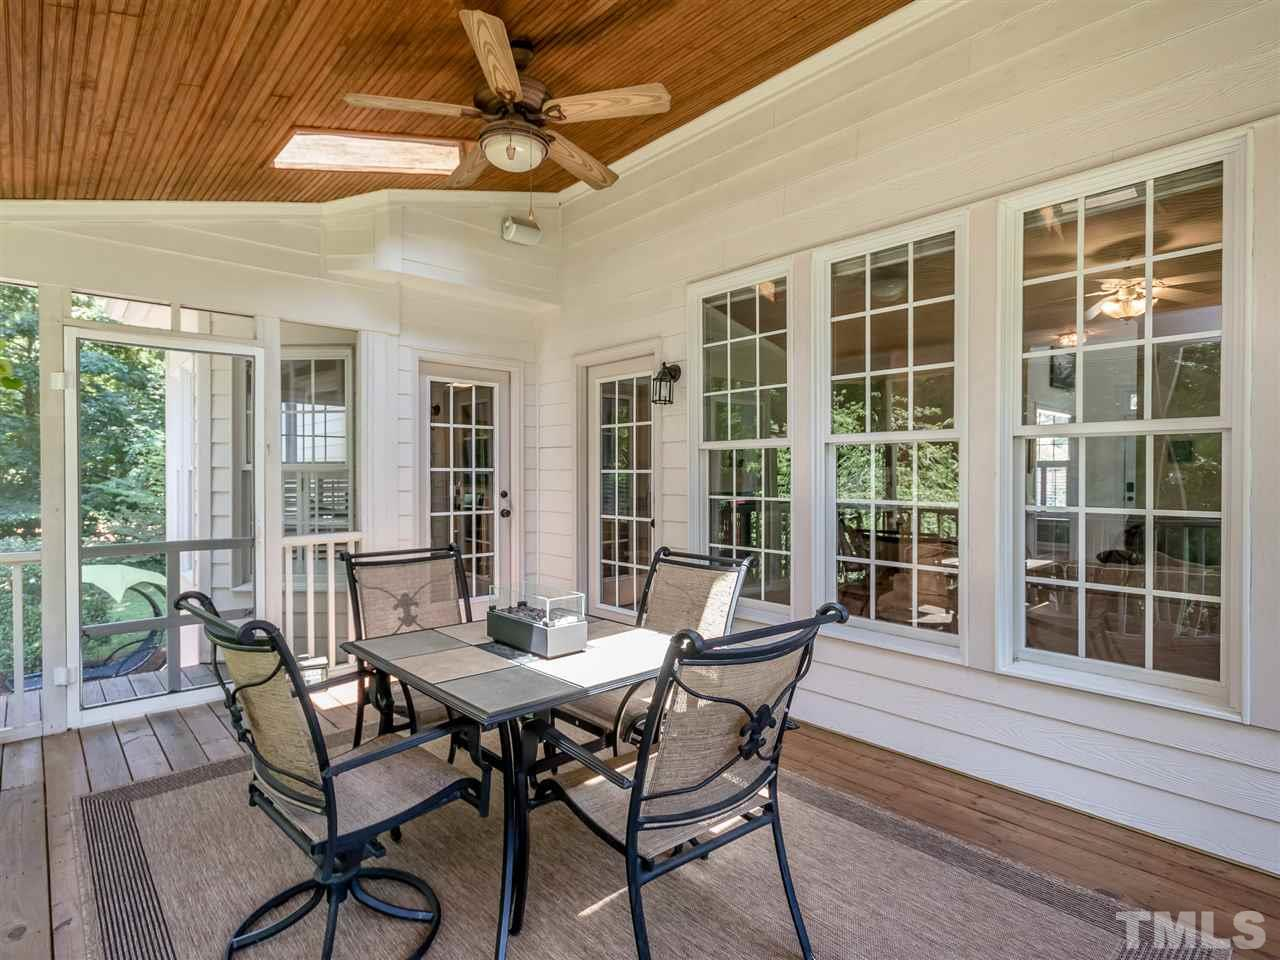 Who wouldn't want this screened porch. Beadboard ceiling, skylights, space for a table and separate seating area. Imagine drinking your morning coffee or evening spirit overlooking your private backyard and bird watching.